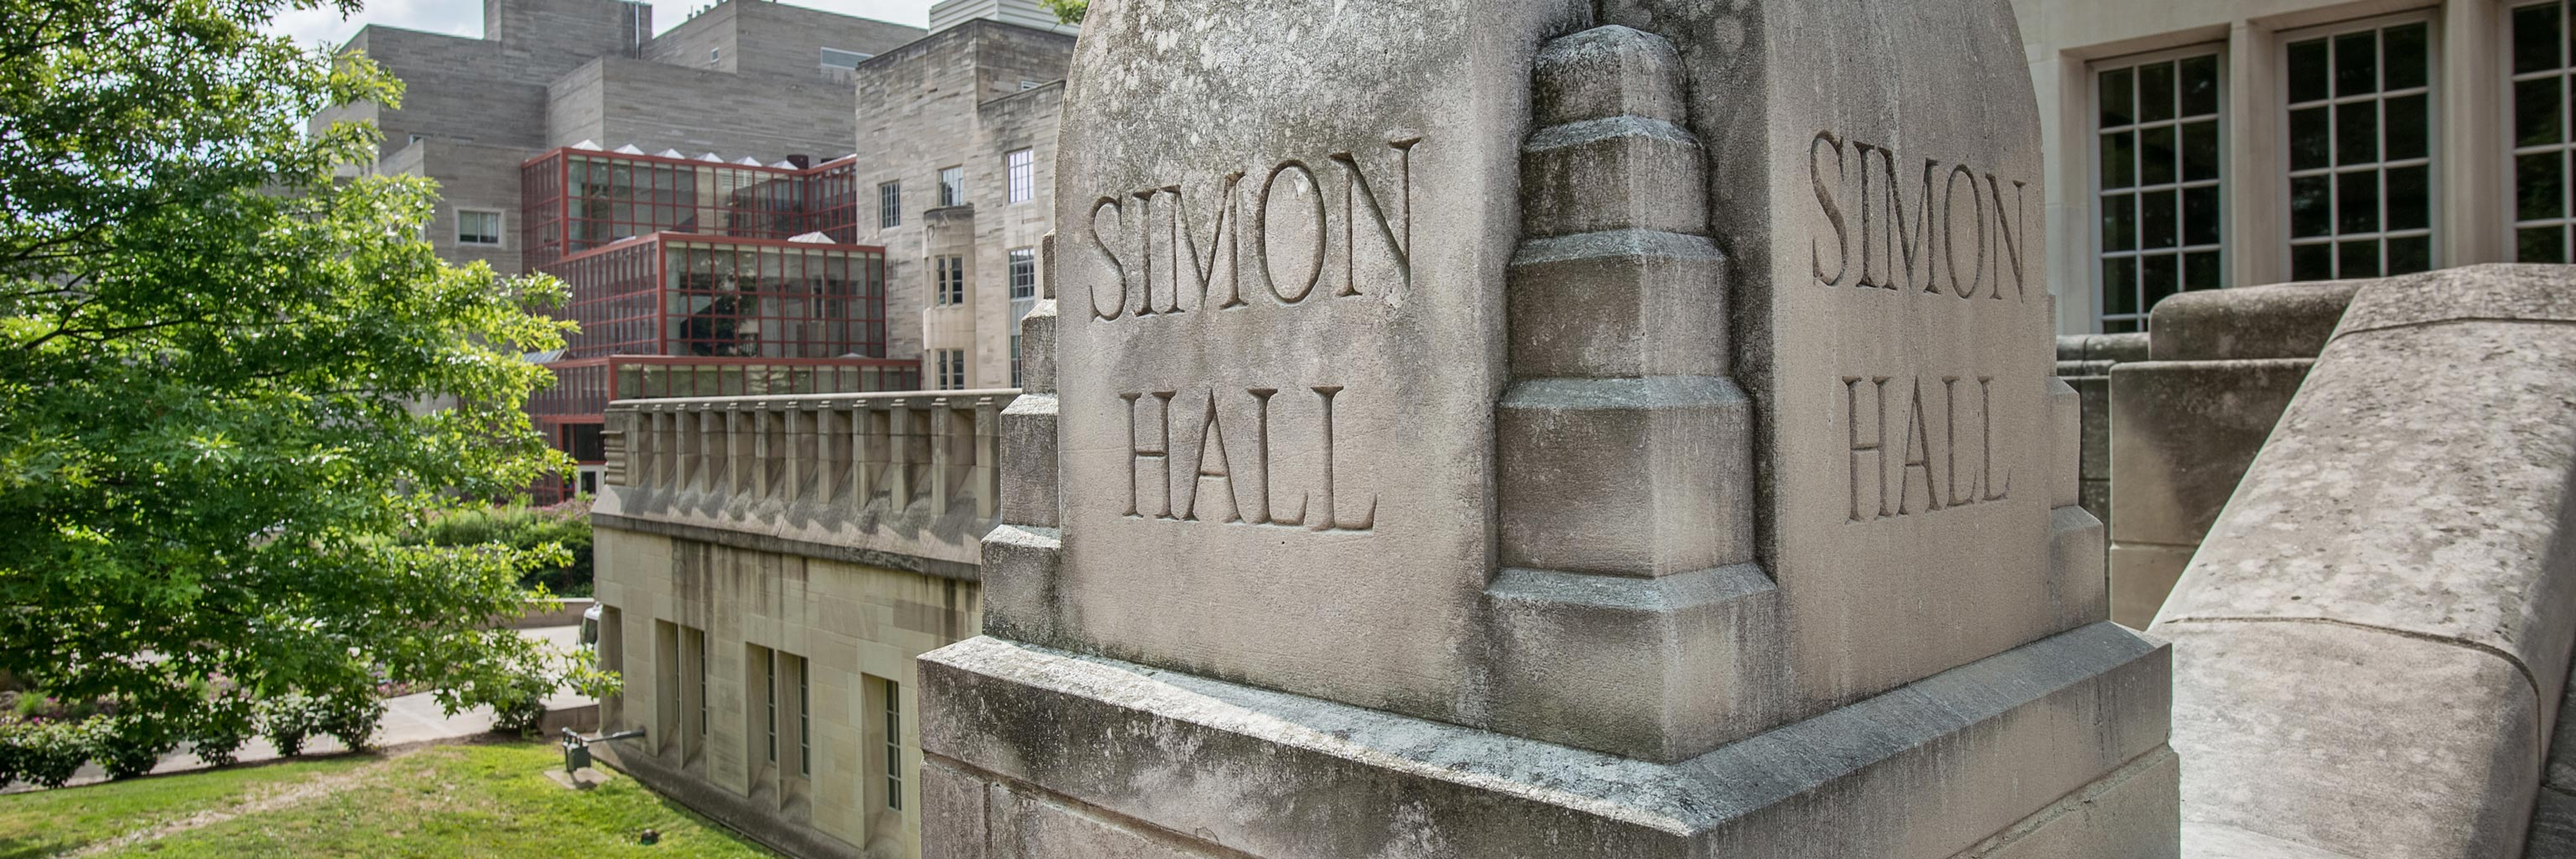 Outdoor view of Simon Hall and a tree